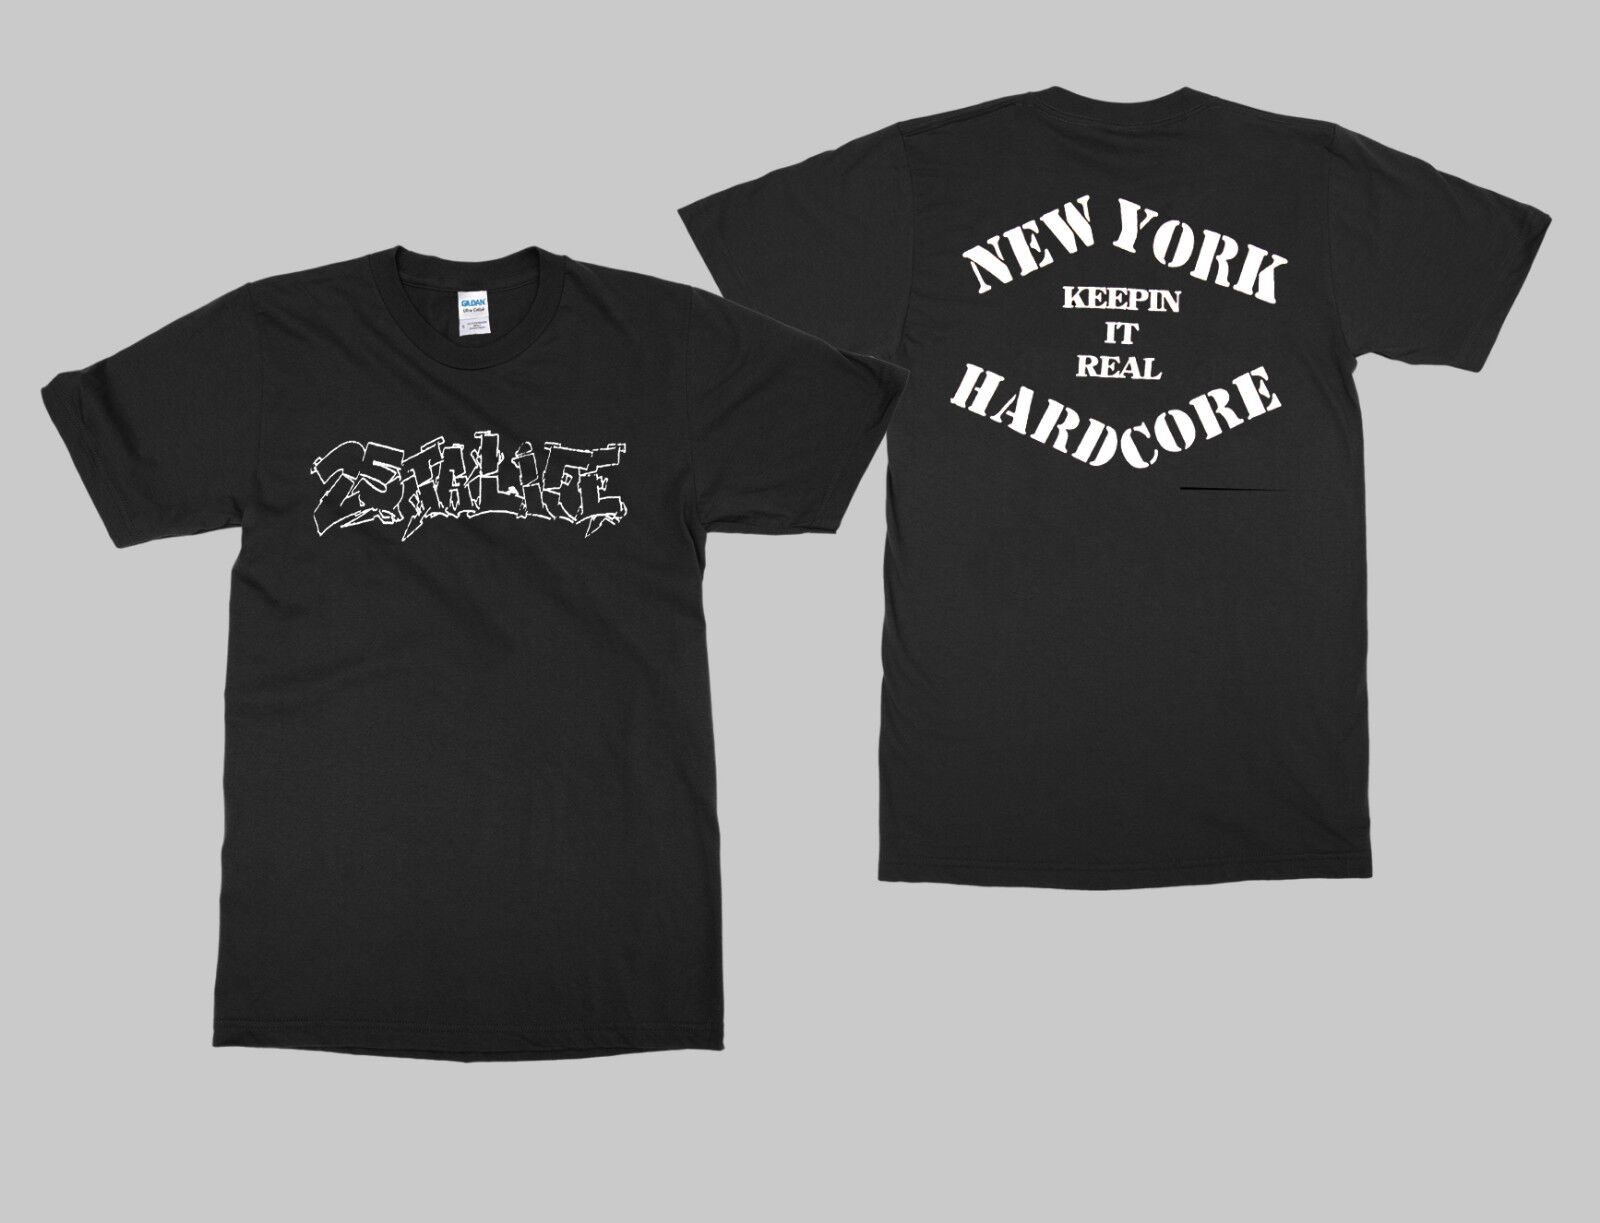 25 TA LIFE T shirt NEW YORK HARDCORE KEEPIN IT SHIRT NYHC MADBALL